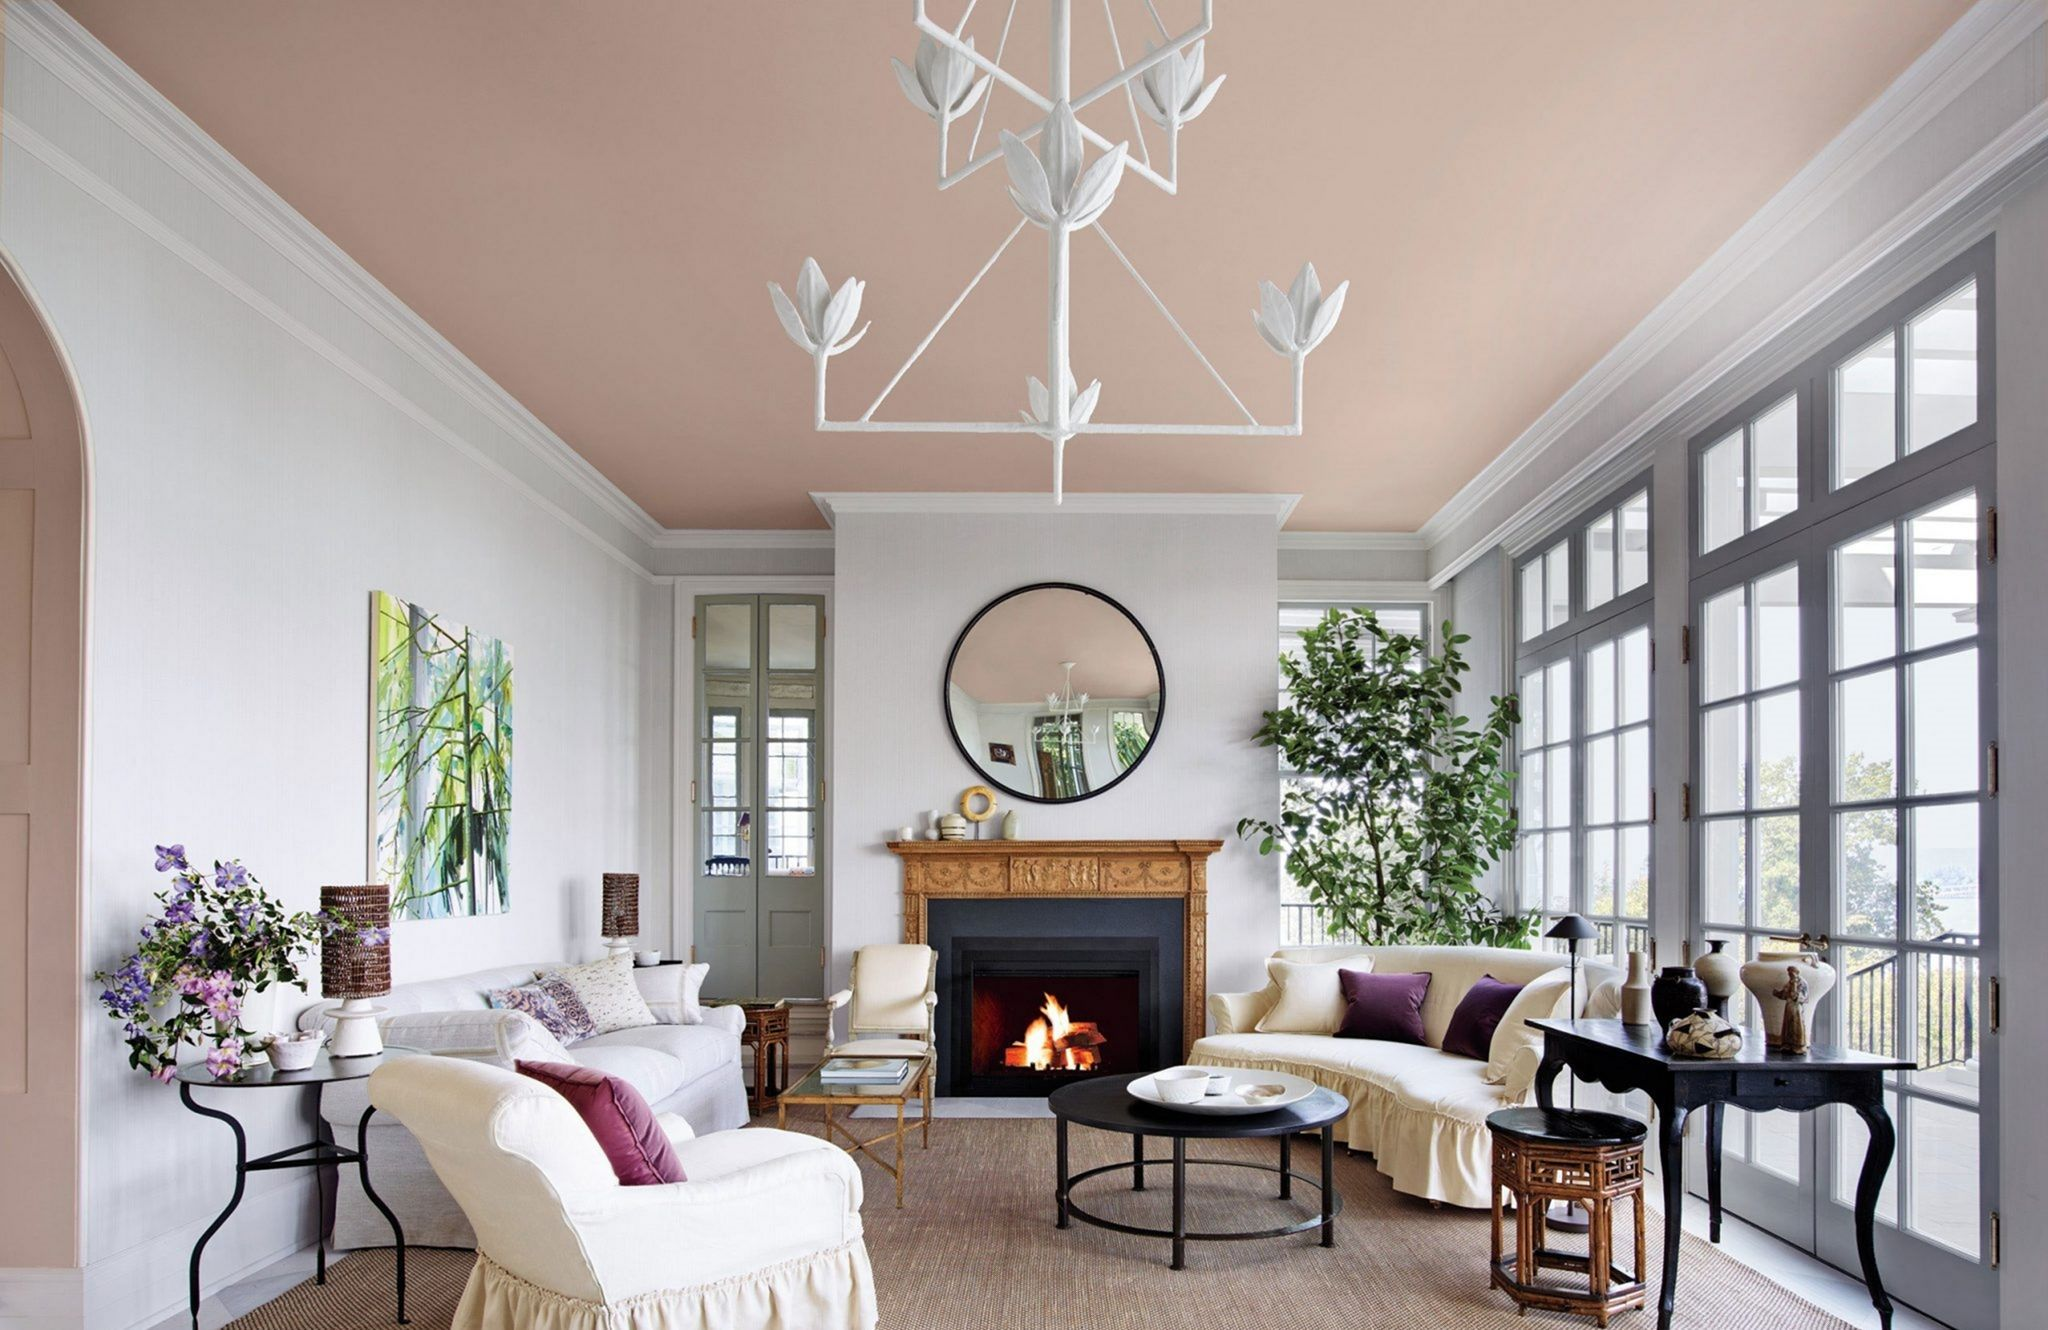 10 Impressive Ceiling Painting Ideas For Your Small Home Unique